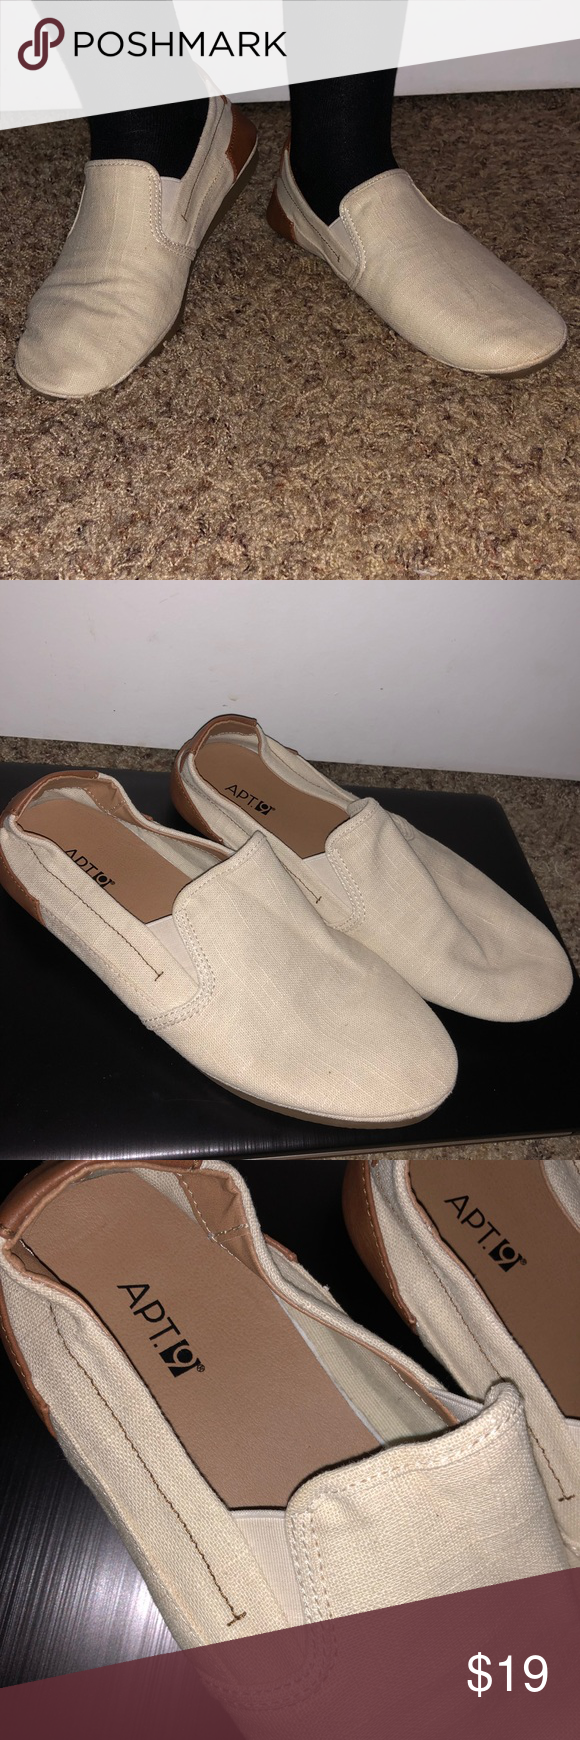 Apt 9 Slip On Canvas Loafers Cream Colored Shoes Backing Is Brown Leather Worn Maybe Once 8 5 Men S Ons